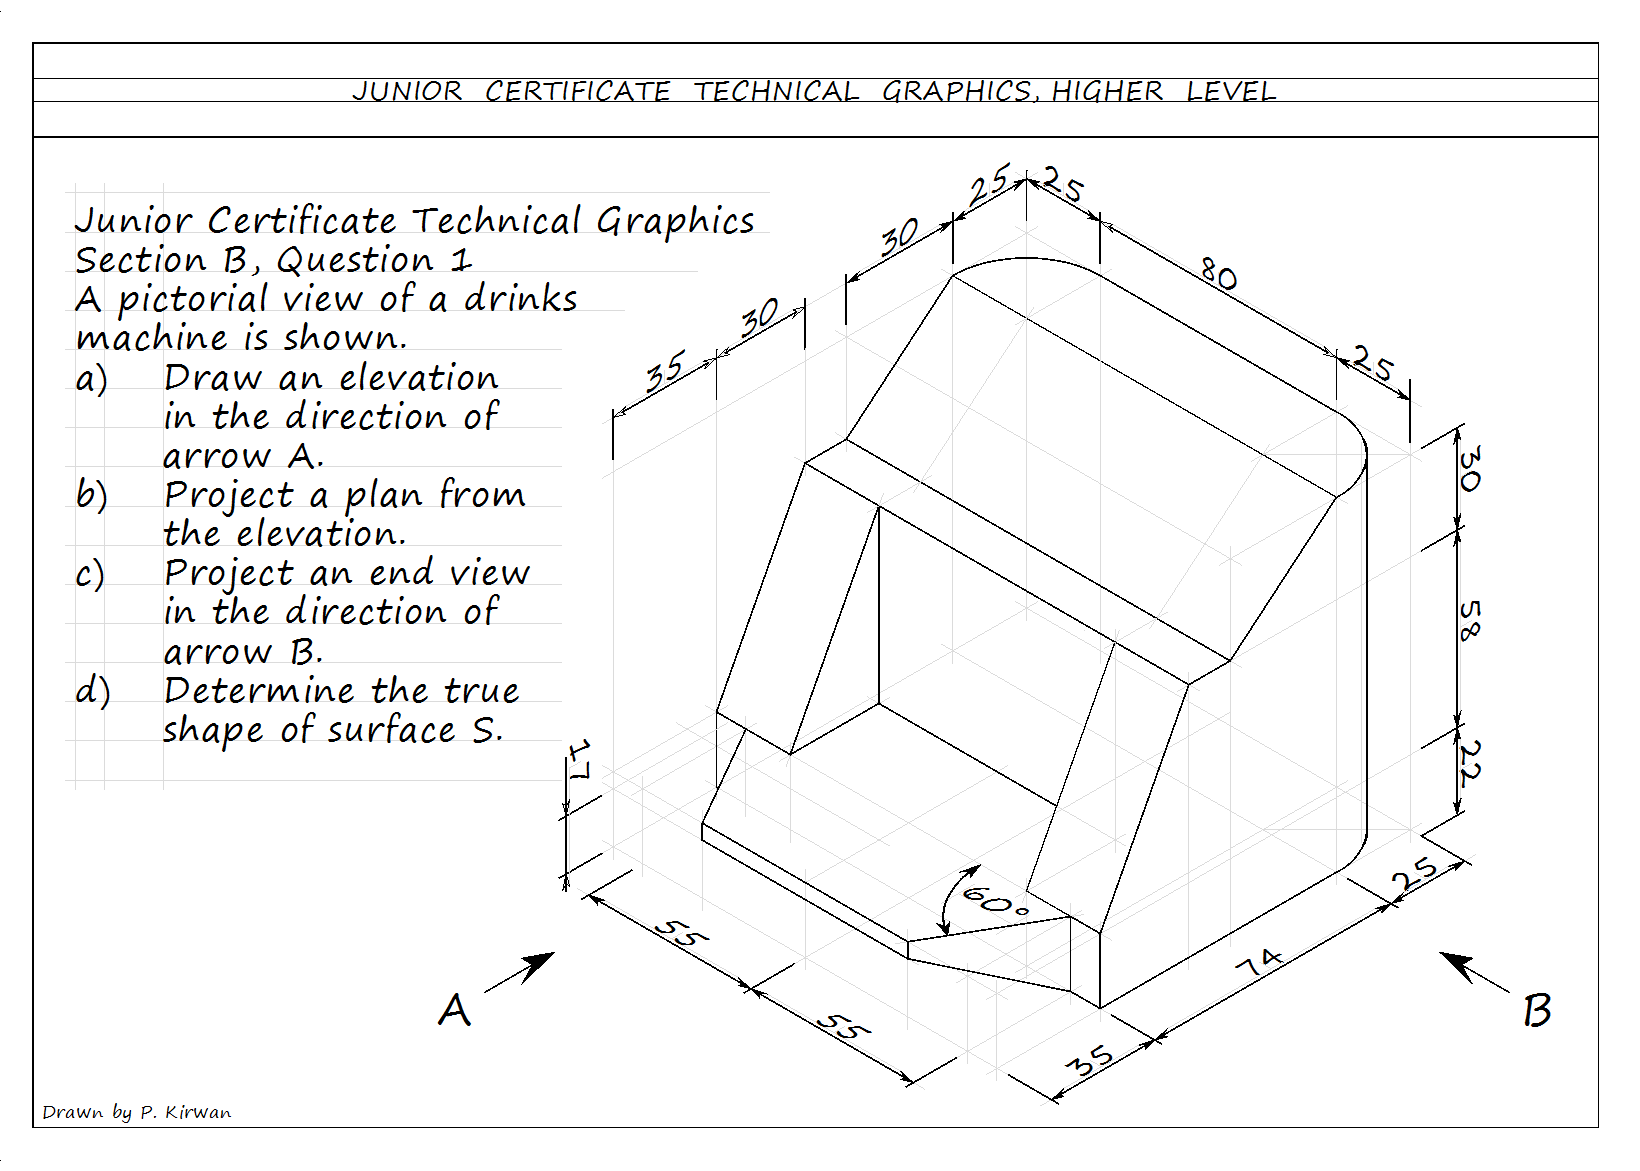 Technical Graphics Elevation Plan End View : Technical graphics wexford cbs